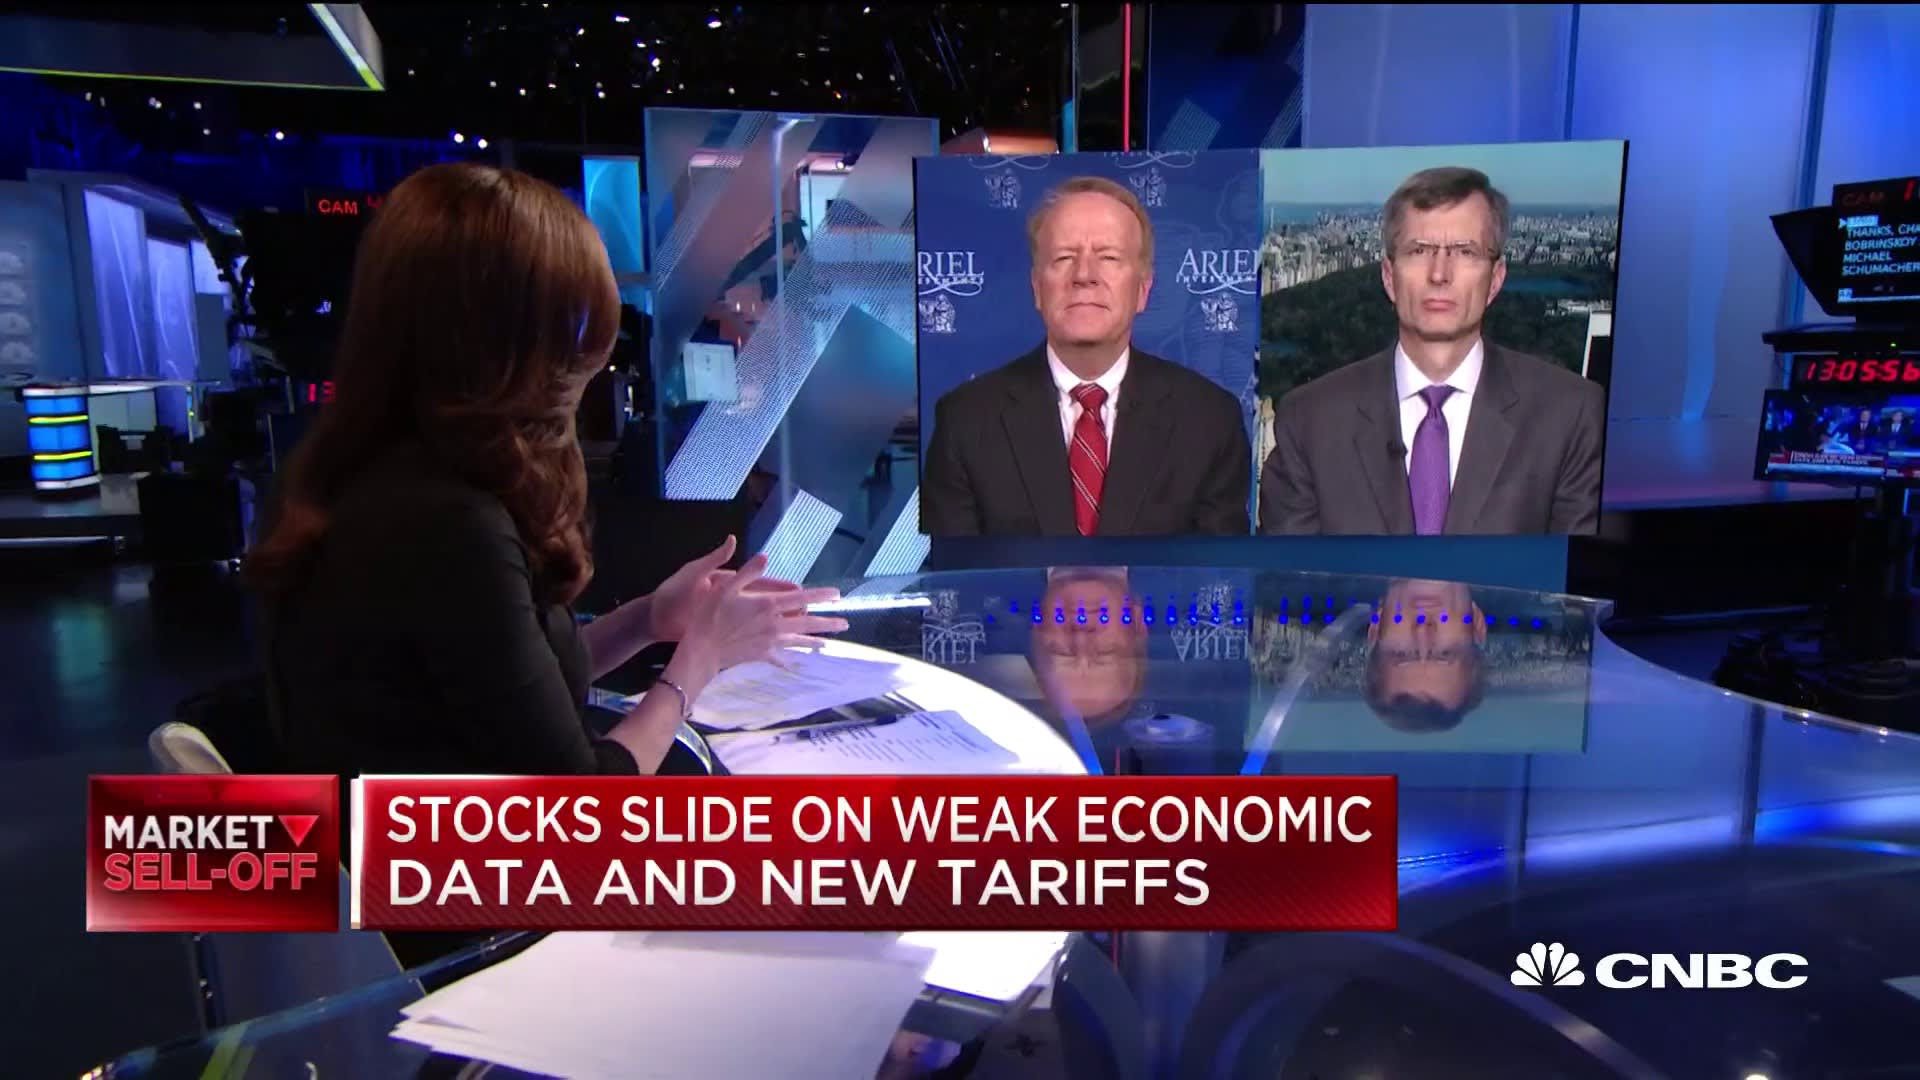 Investors should say no to bond market directional risk, says Wells Fargo managing director